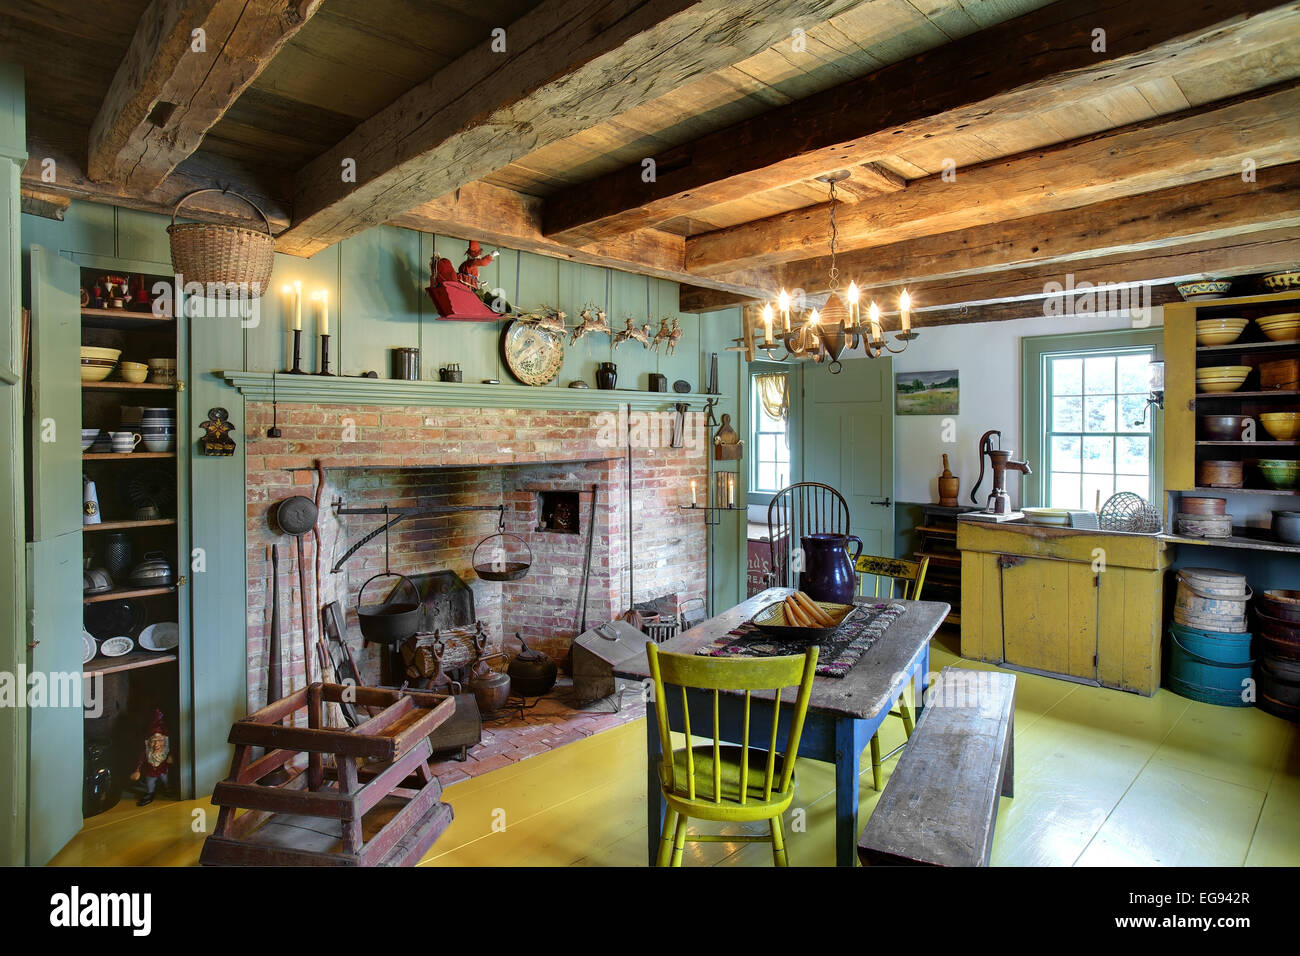 The kitchen, dining room and fireplace in a restored 17th century primitive colonial style home. - Stock Image